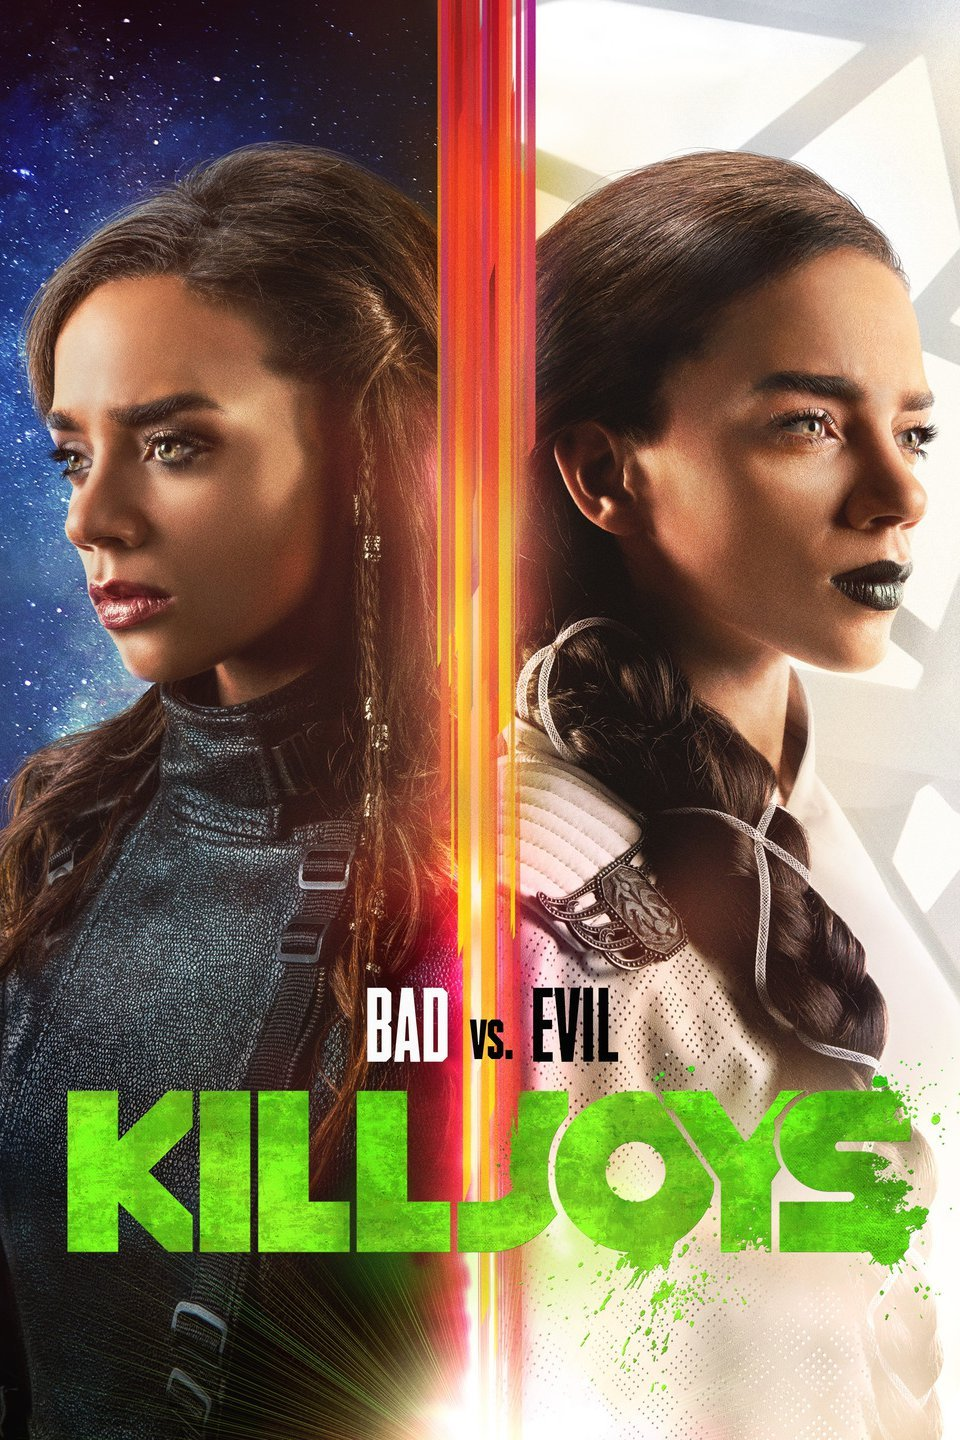 Killjoys Season 3 Episode 8 HDTV Micromkv